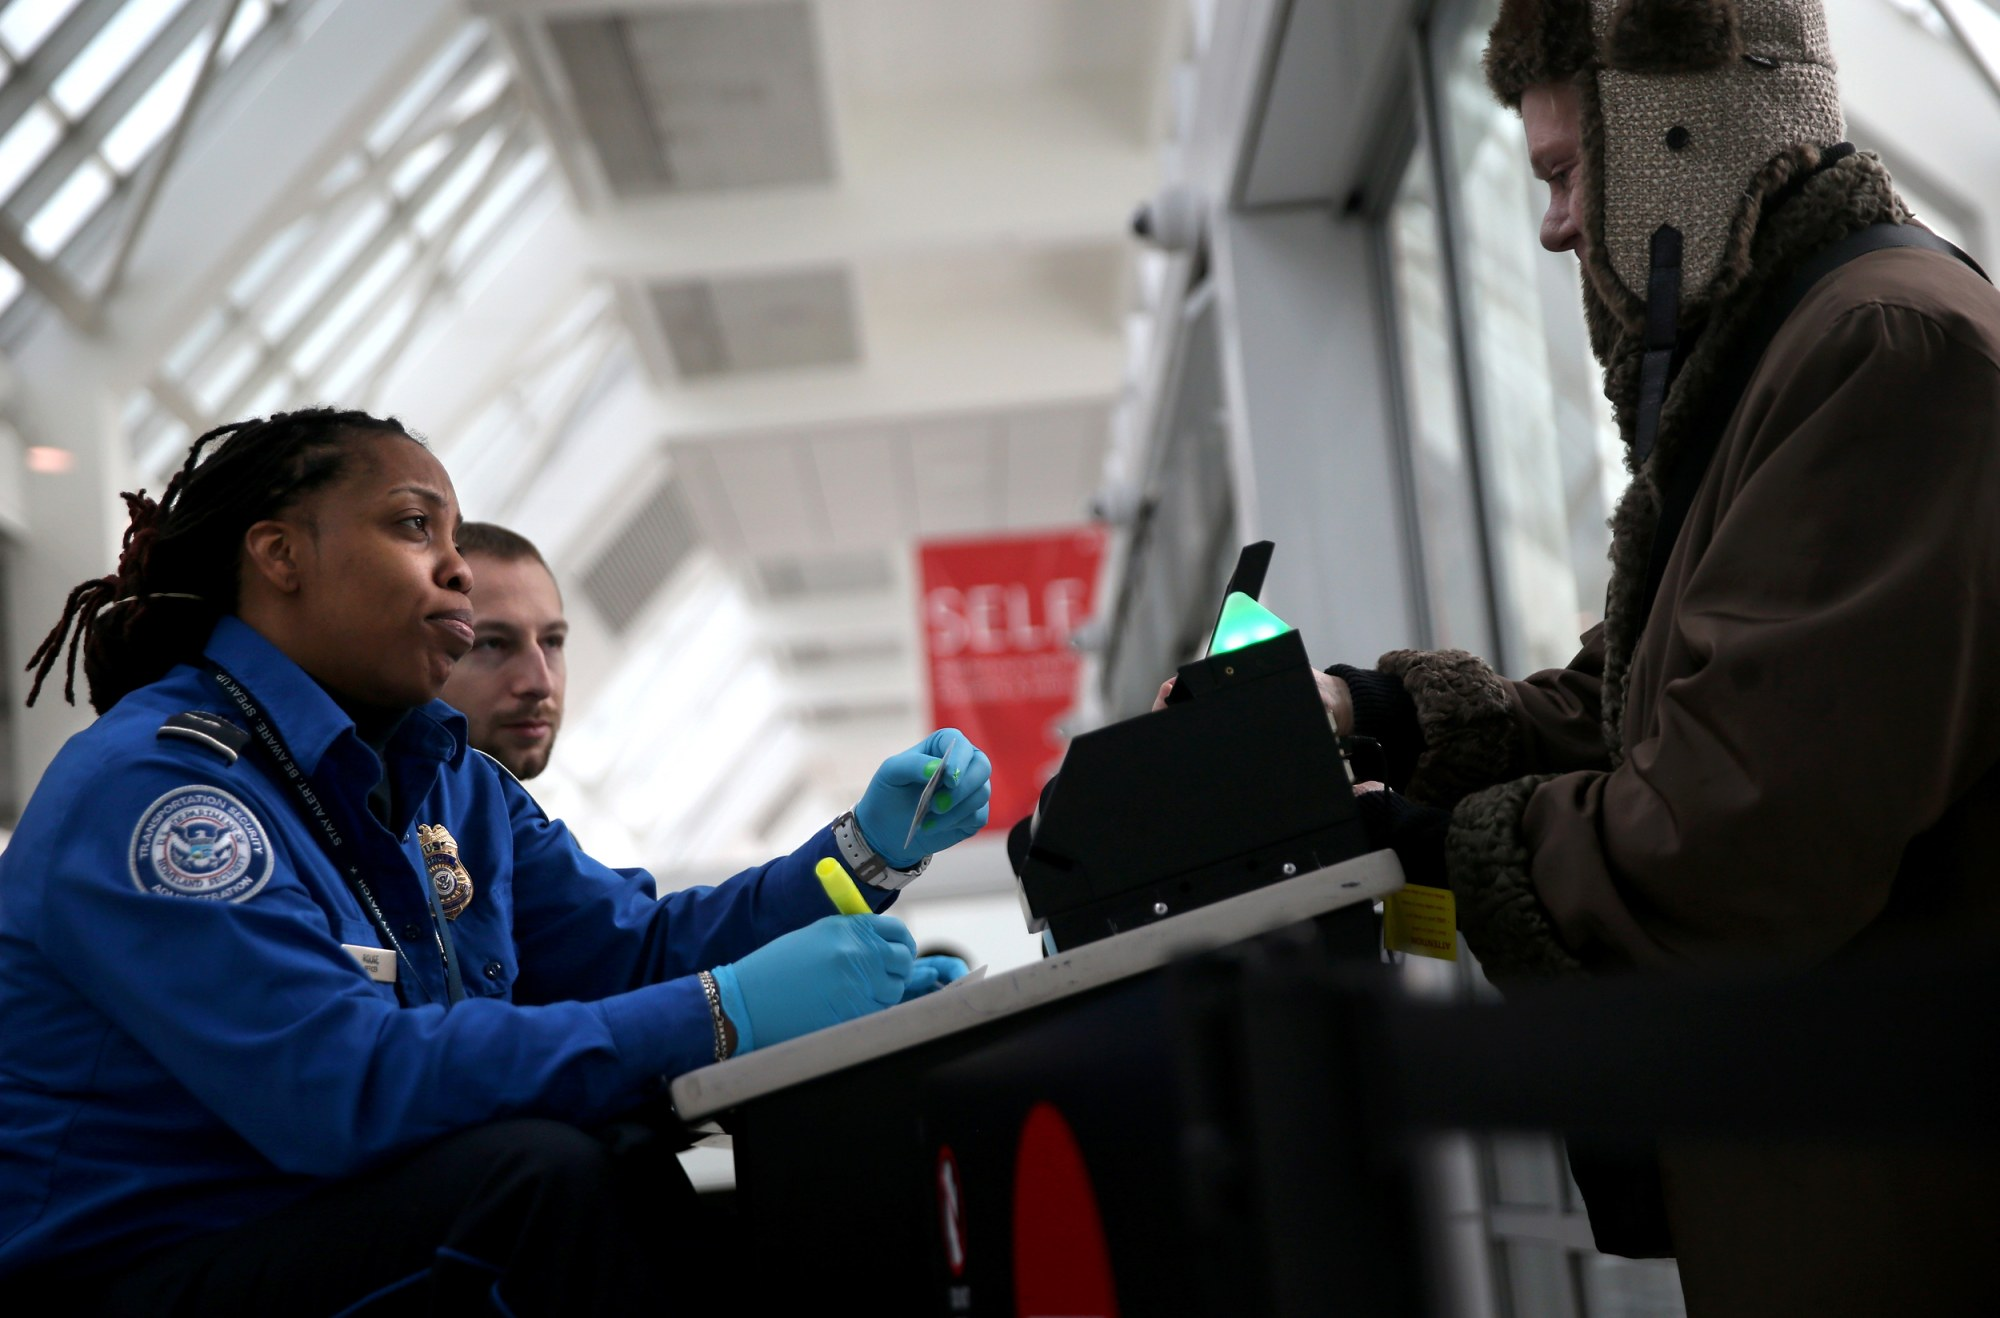 Image: A TSA agent checks a travelers identification at LaGuardia Airport in N.Y. in 2014.